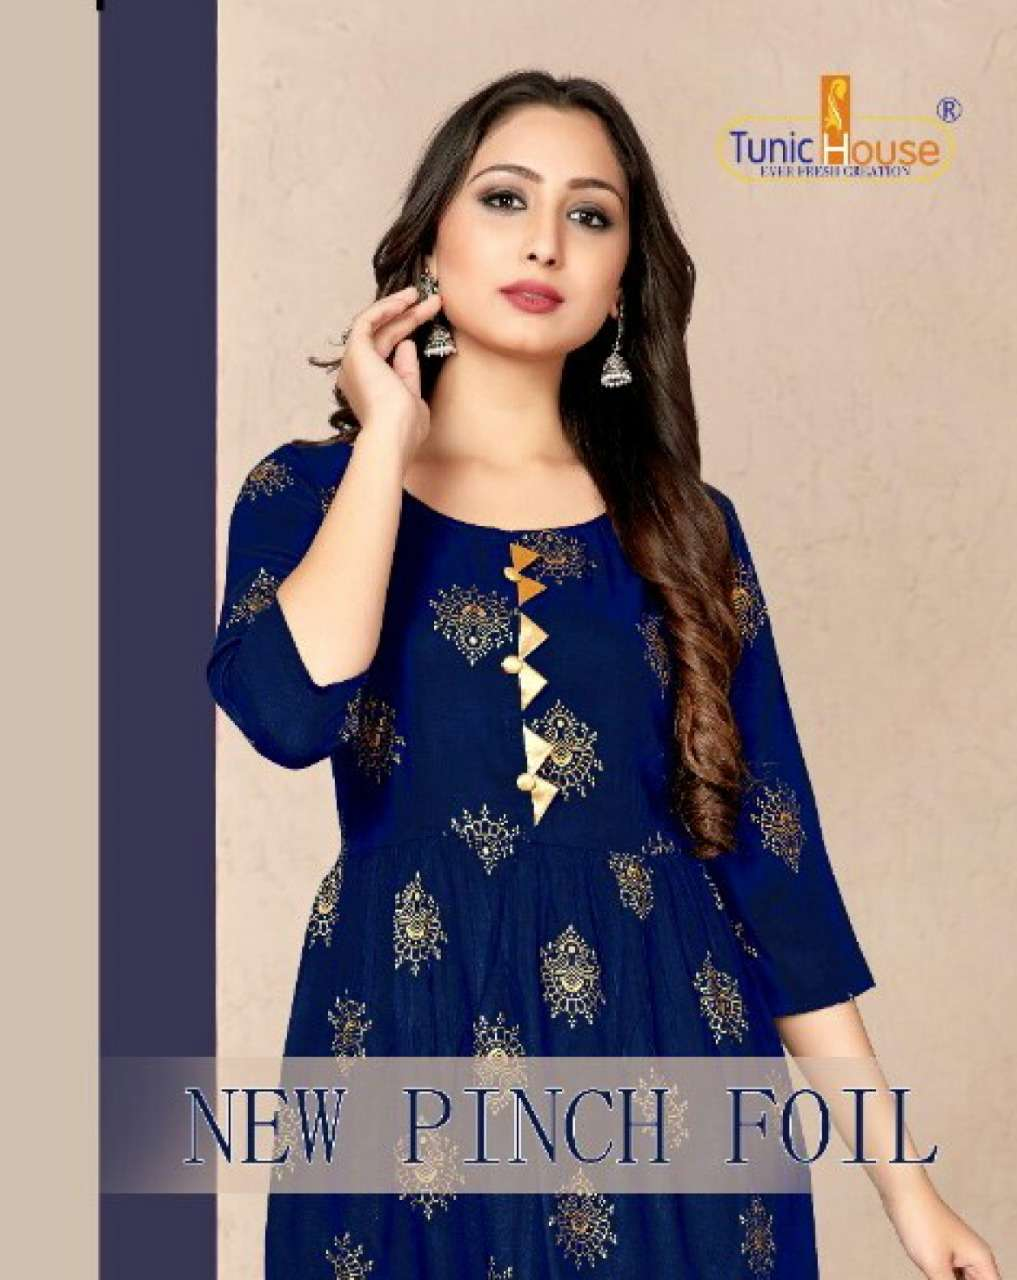 Tunic House New Pinch Foil rayon with Foil Print Kurti Collection